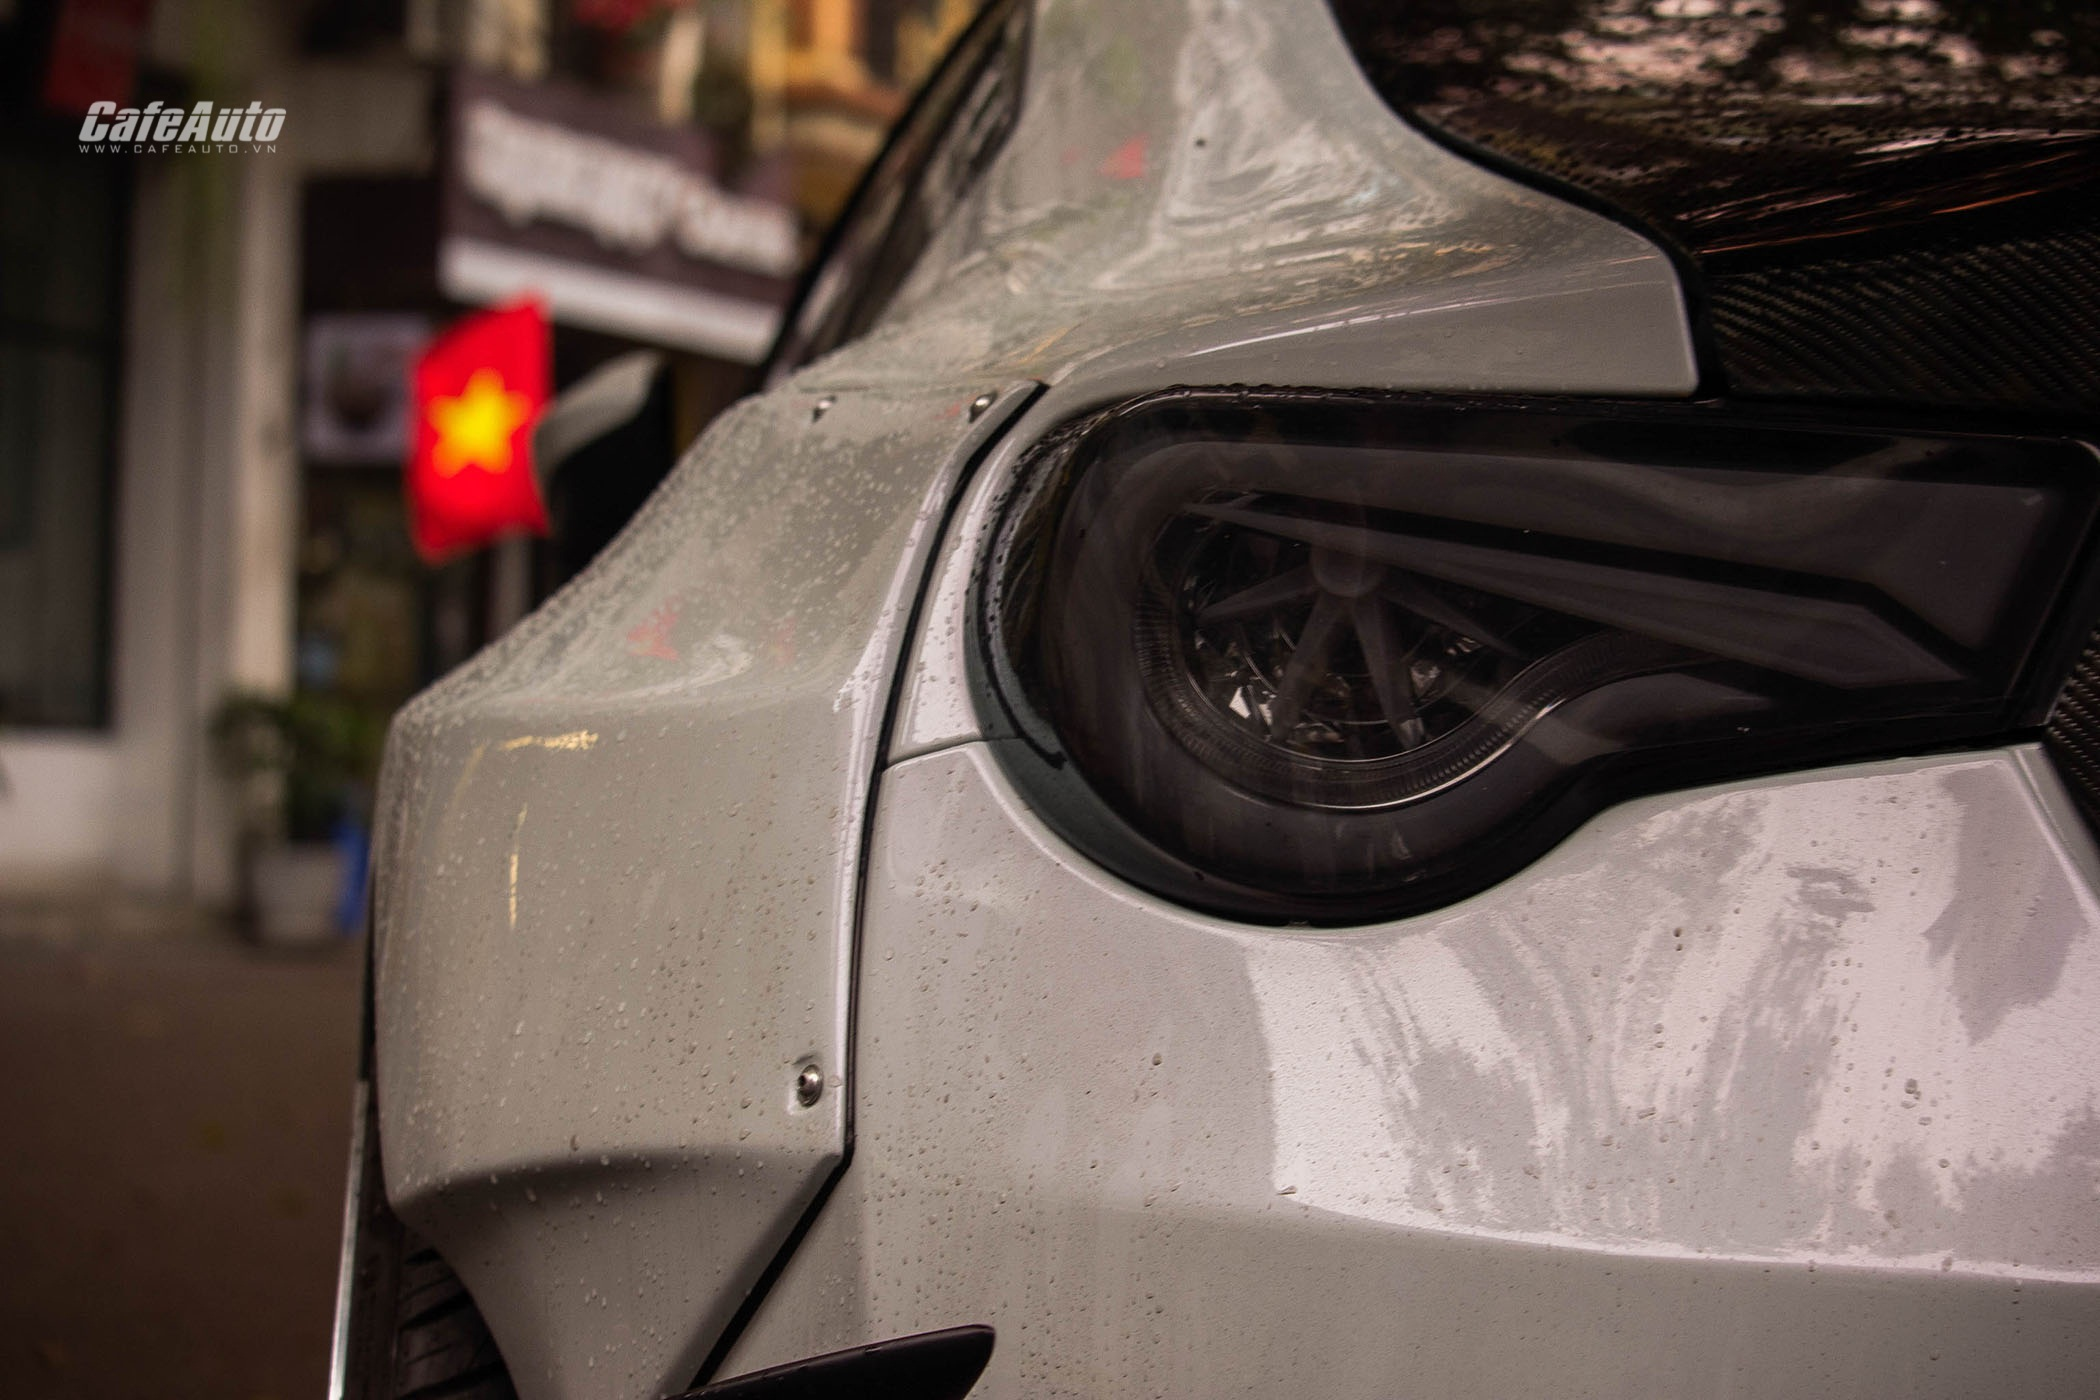 toyota86RB-cafeautovn-12